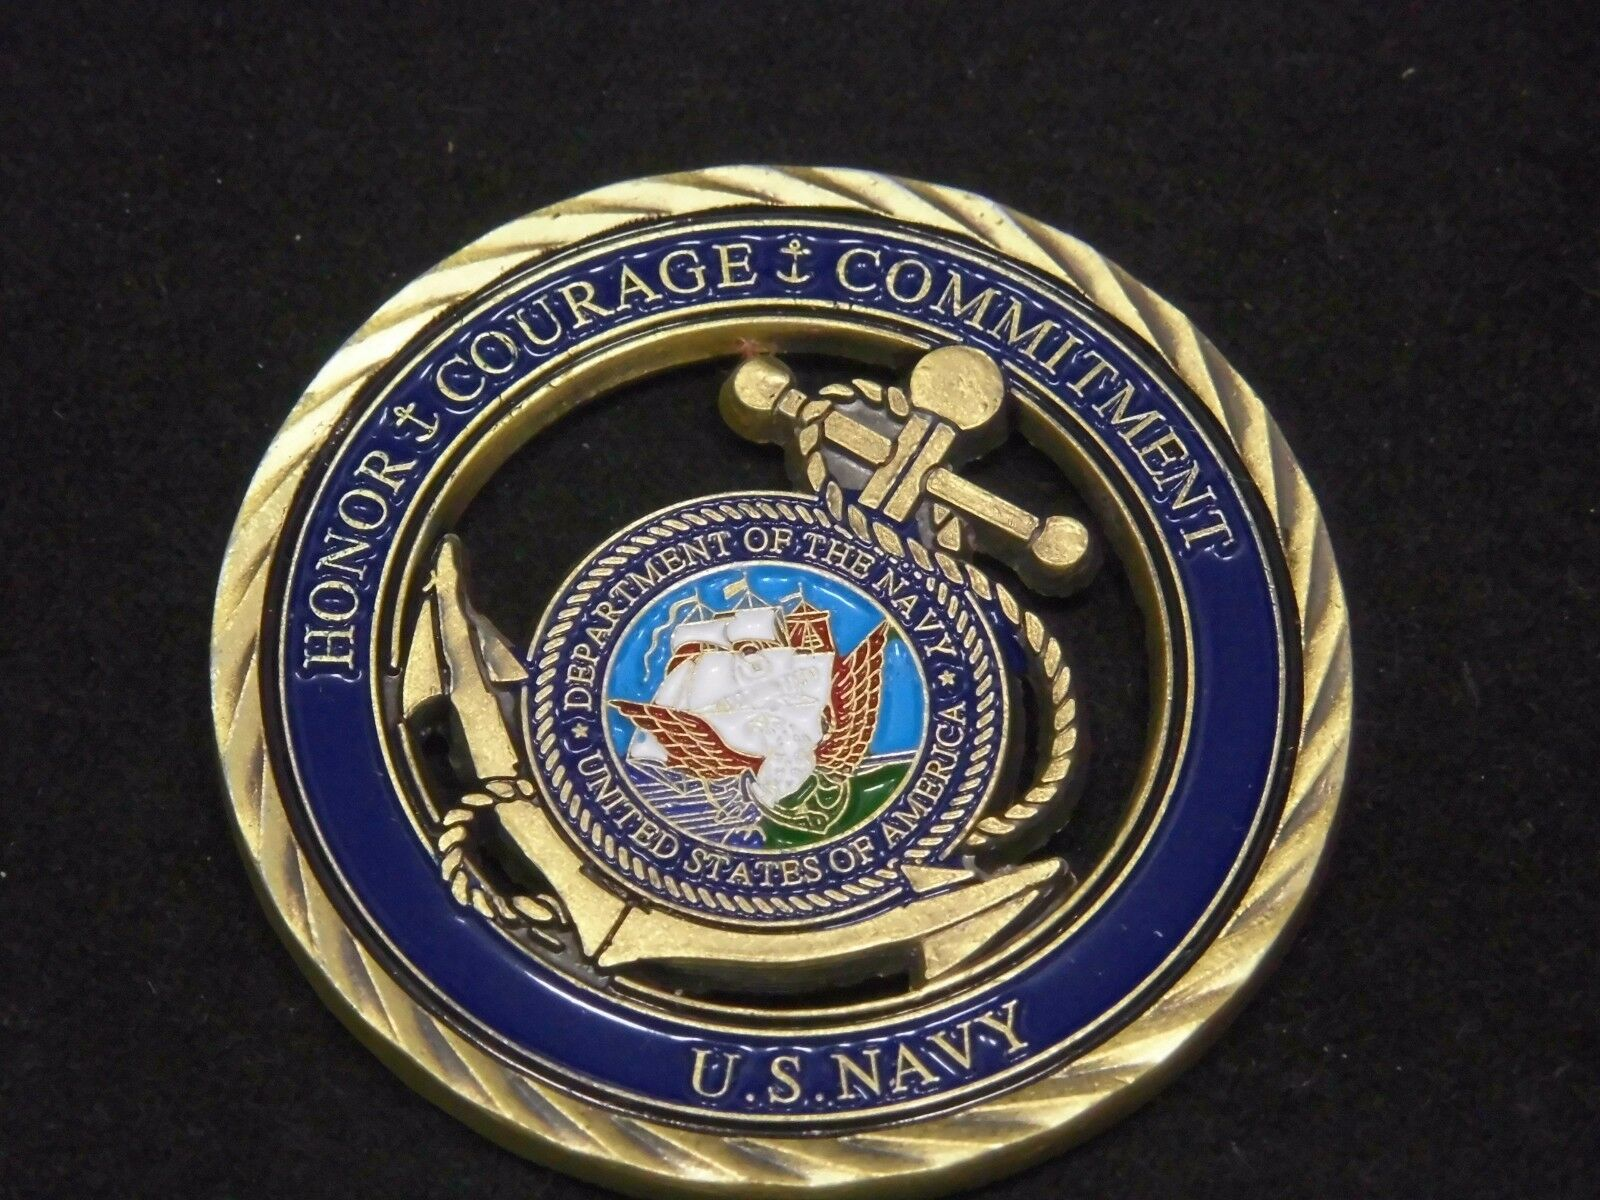 U.S. Navy / Core Values - USN Challenge Coin Naval Collectible Sailor